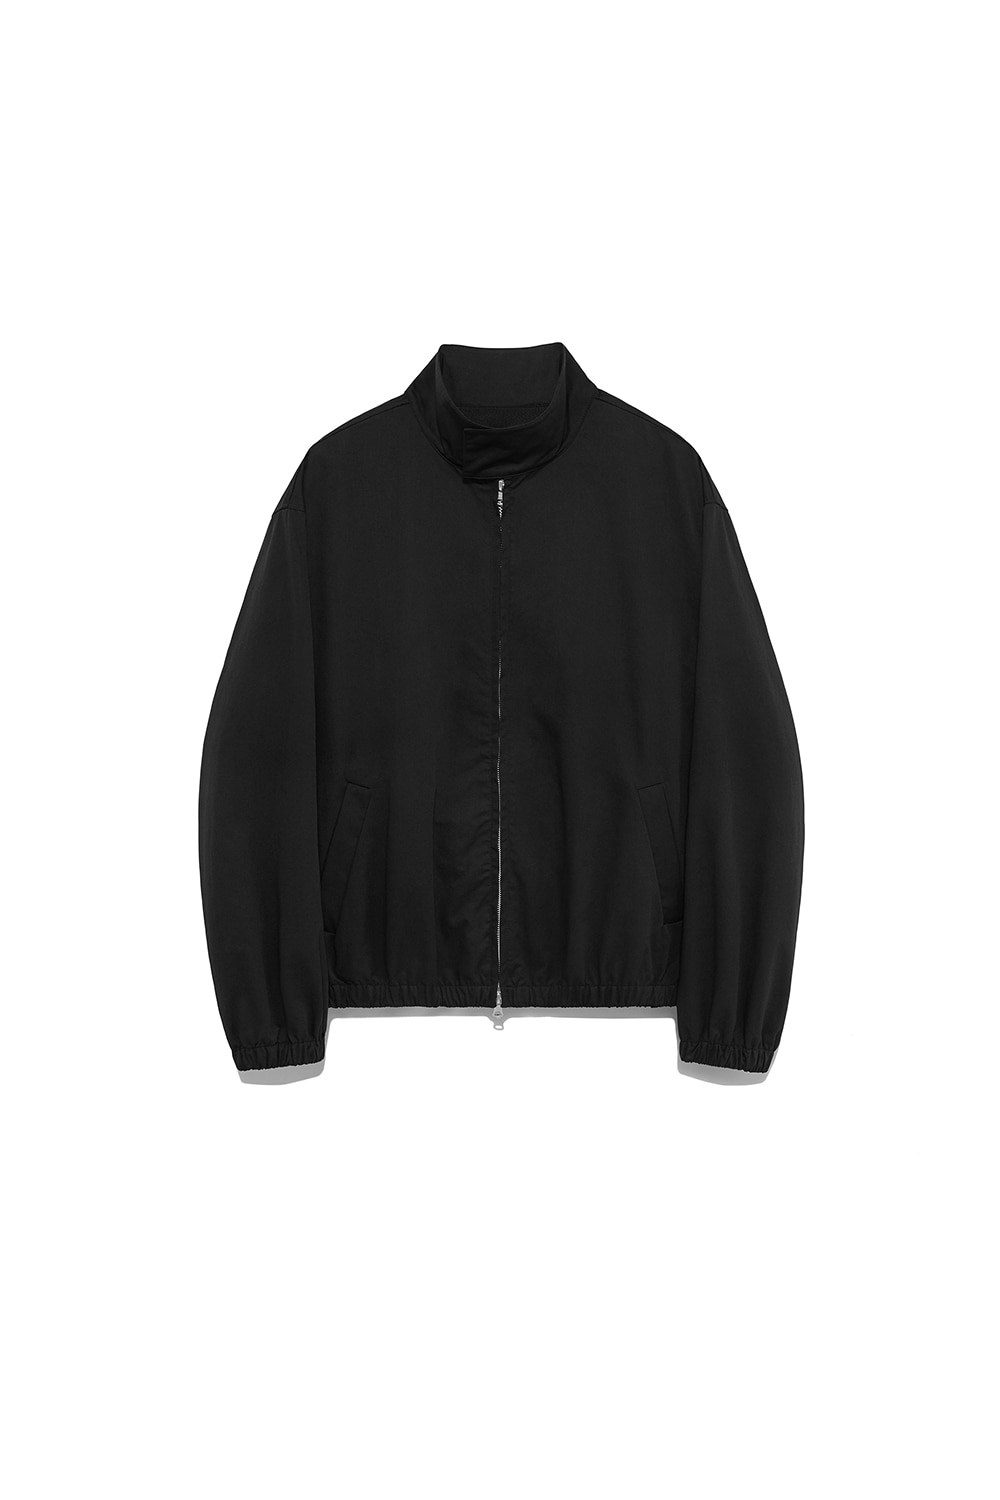 Harrington Jacket Men [Black]